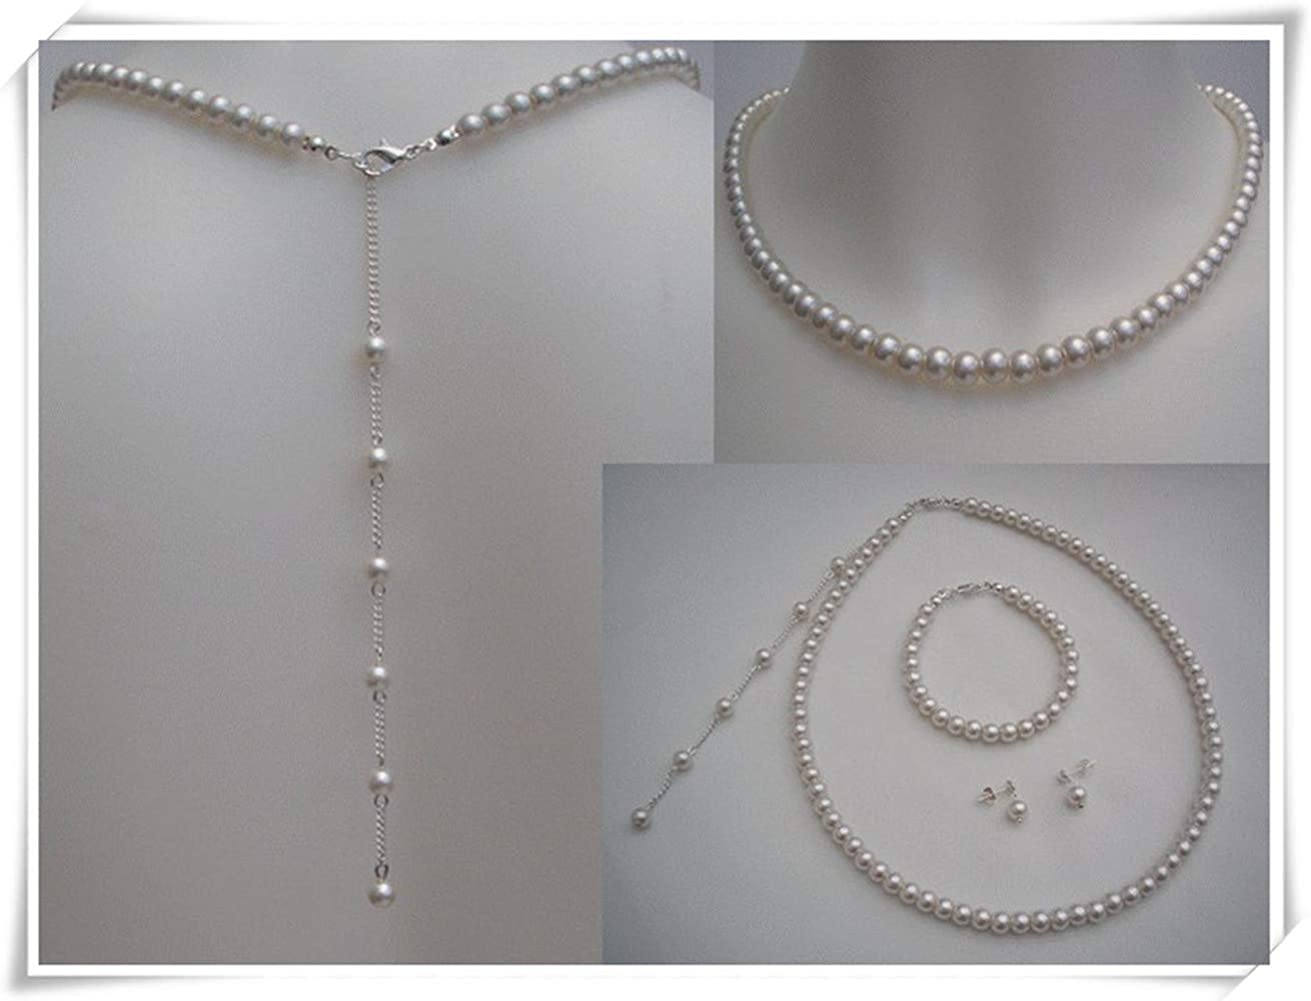 Backdrop Necklace Set, Ivory Pearl with a Bracelet Earrings, Backdrop Necklace Set, Wedding Jewelry.